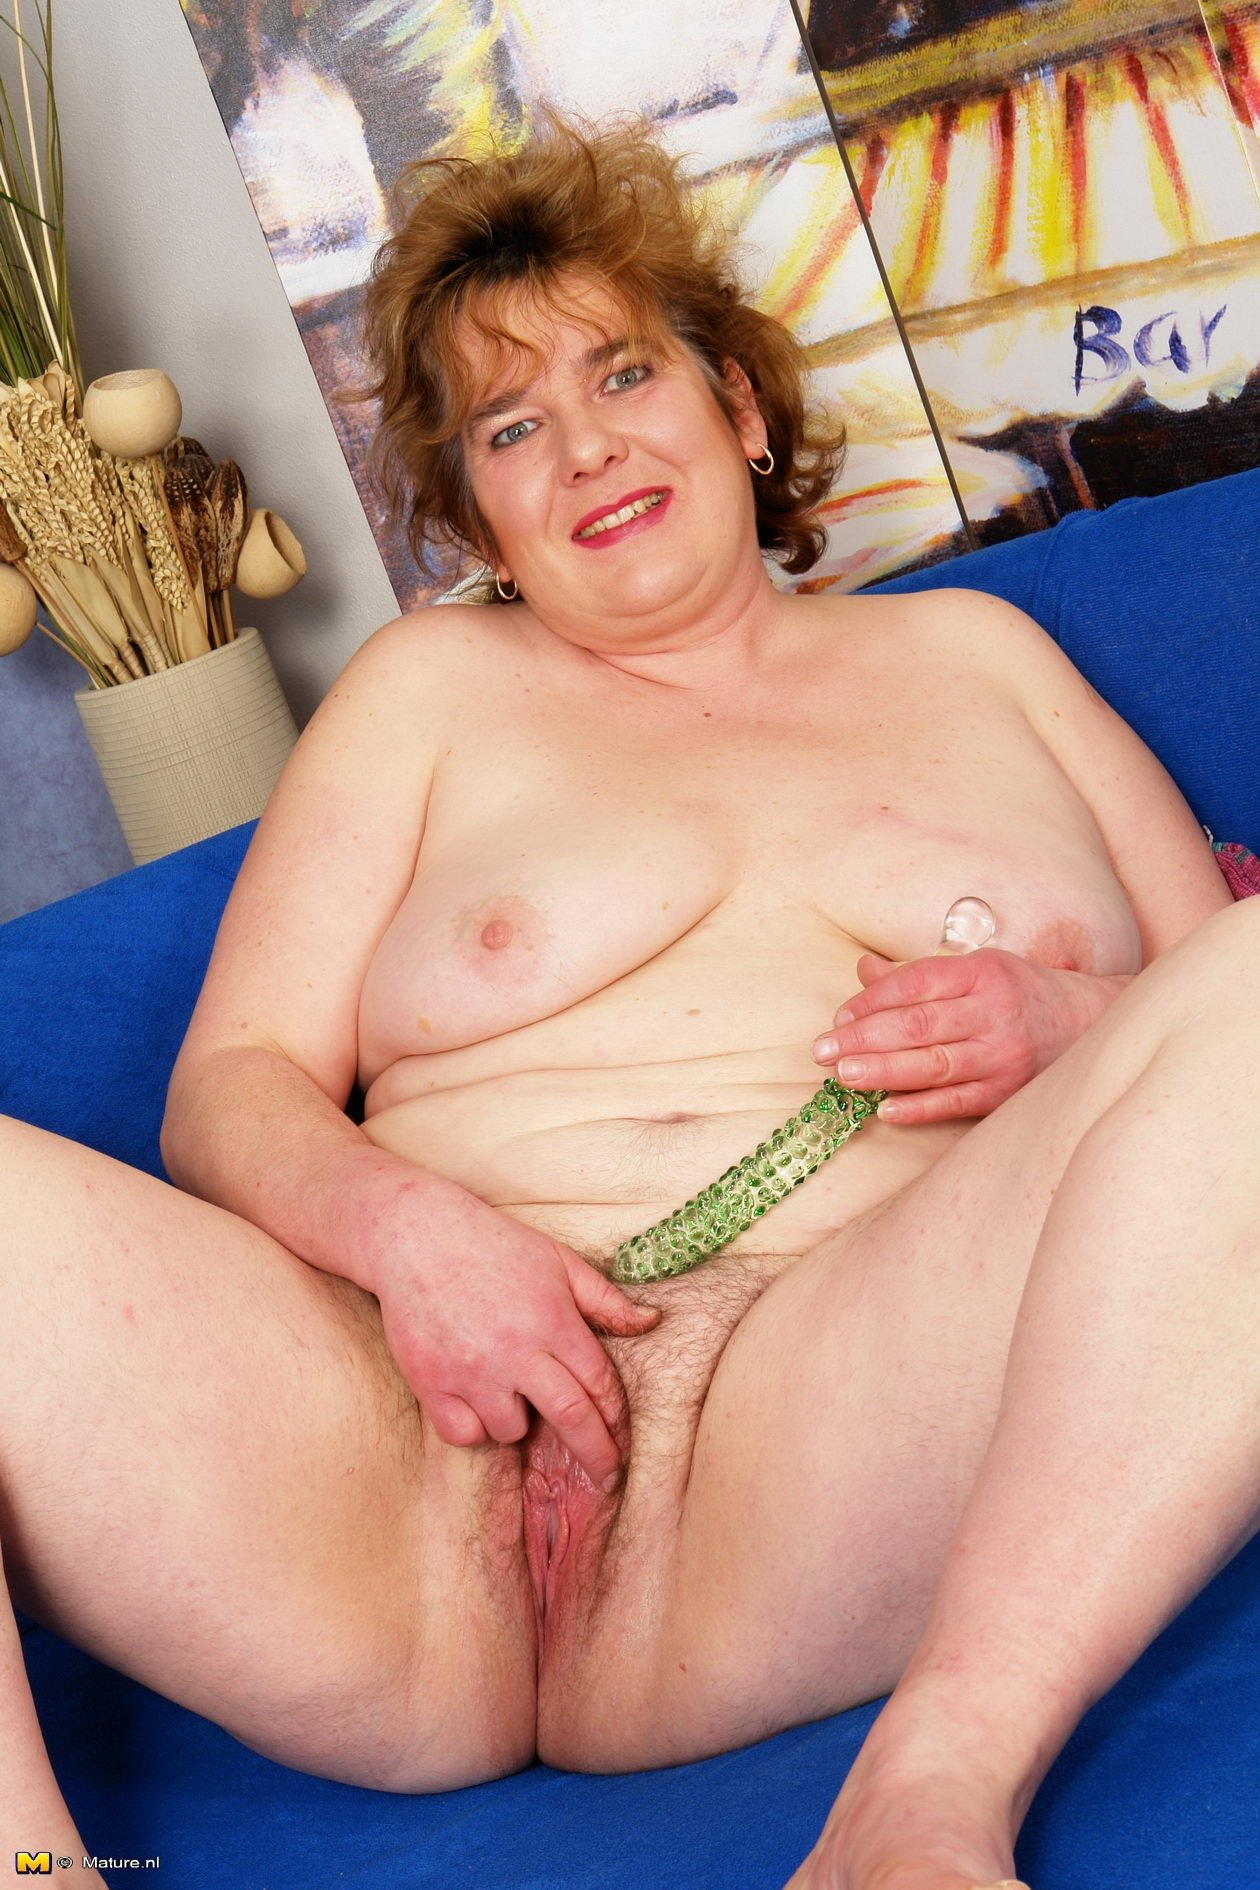 hairy mature on webcam